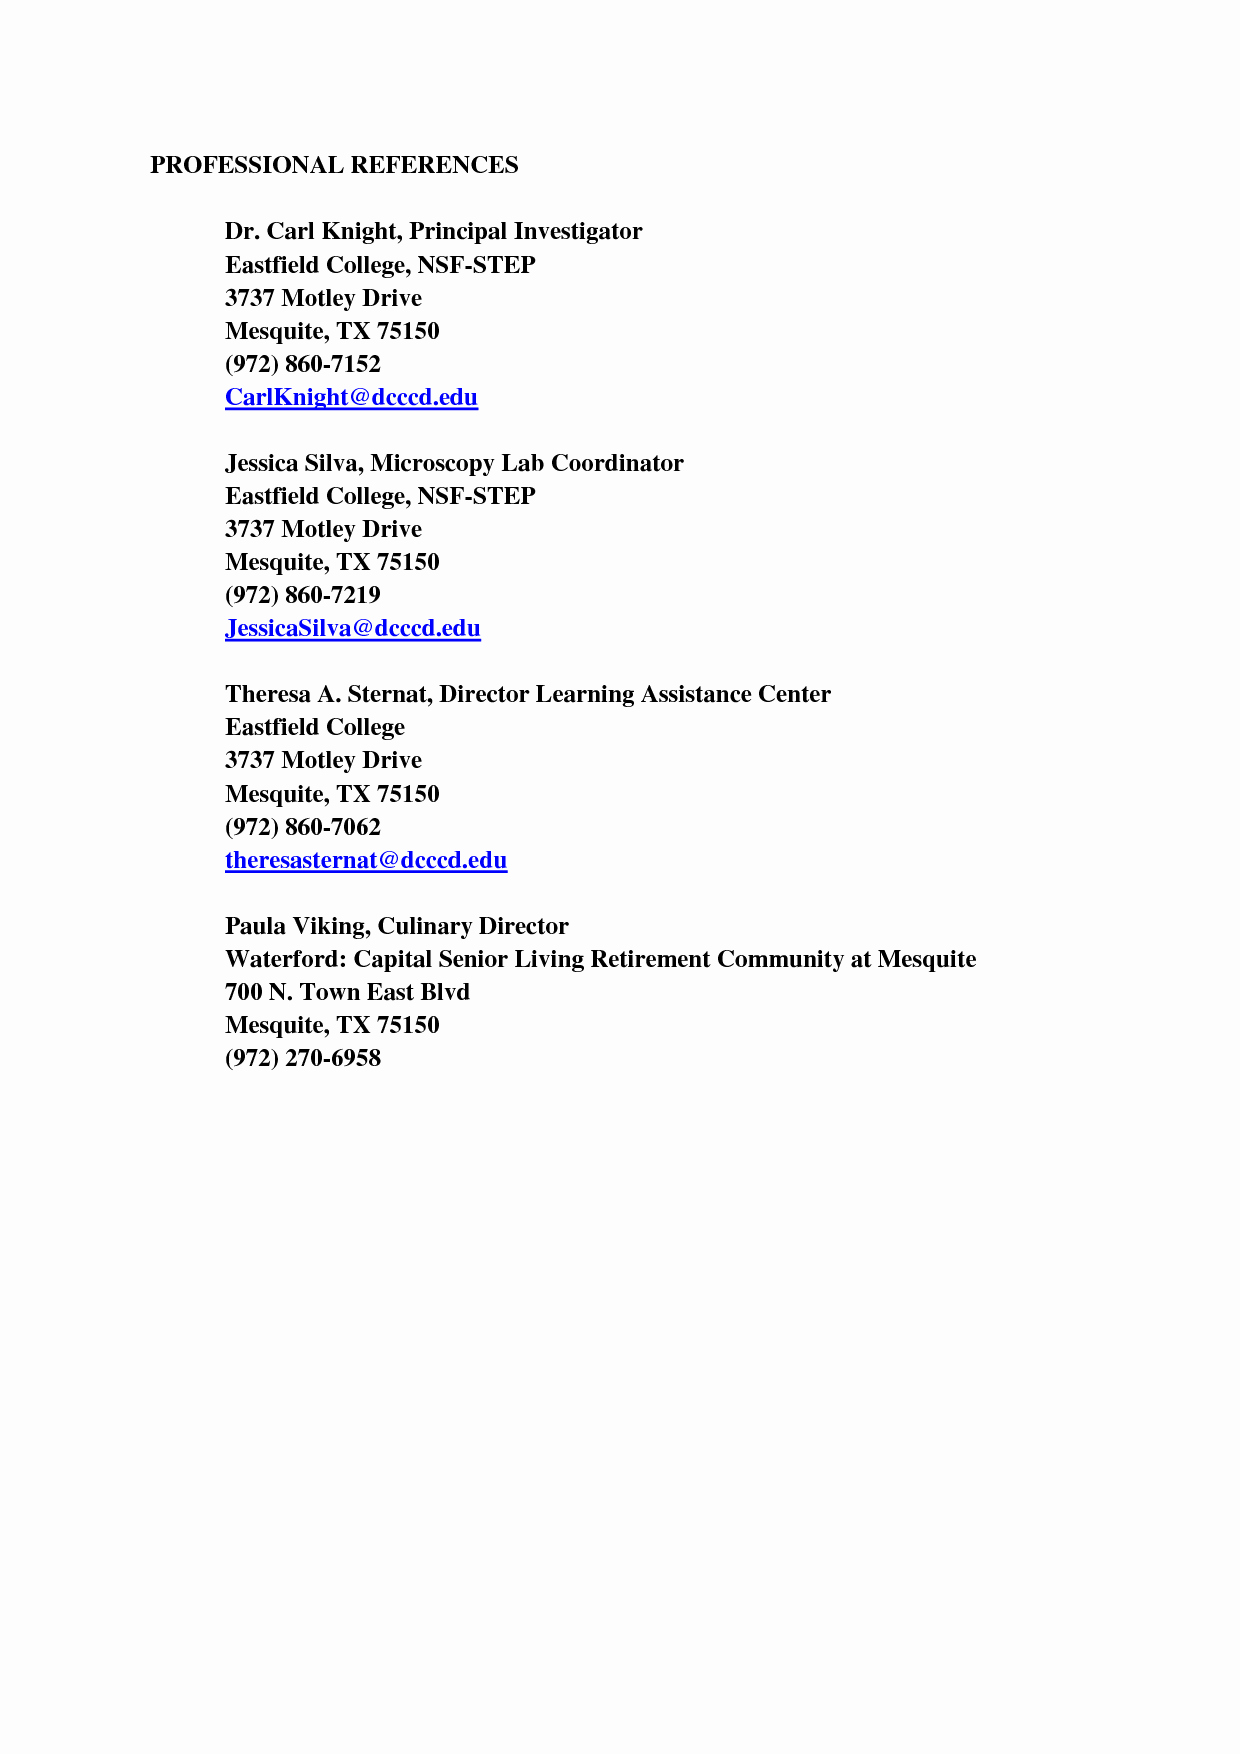 Example Of Professional Reference List Elegant Professional References Template